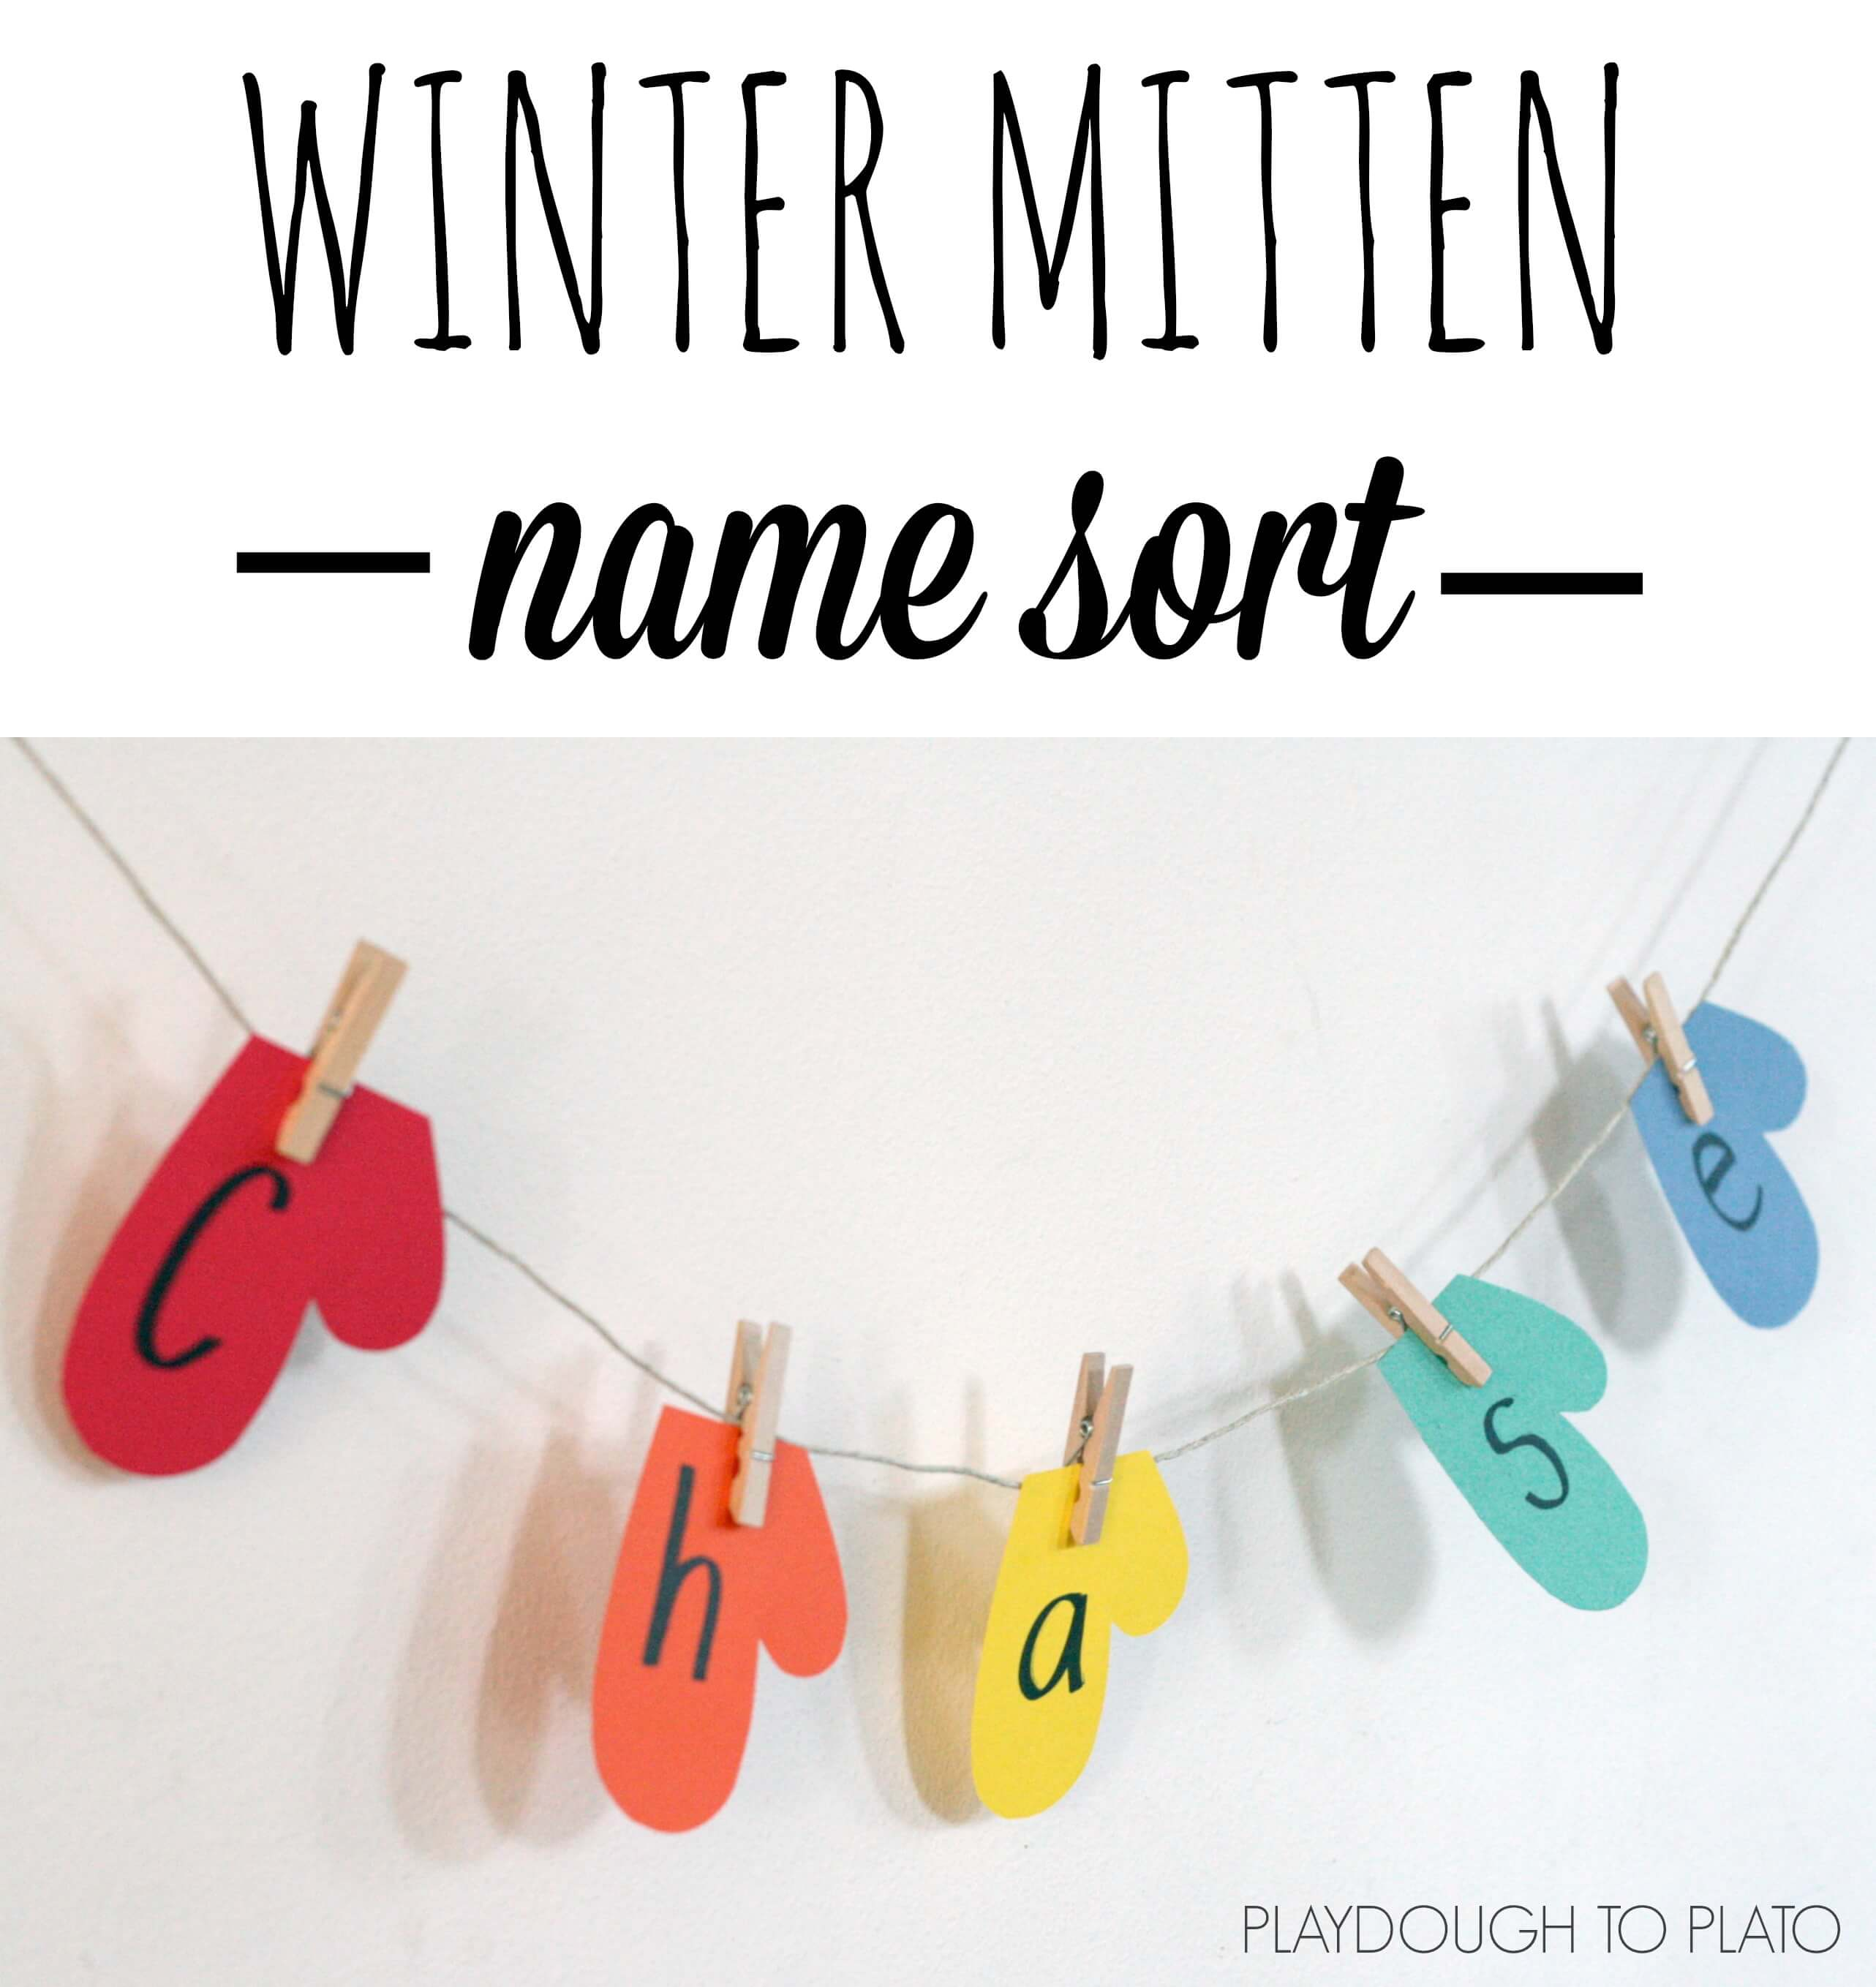 how to get inti the mitten